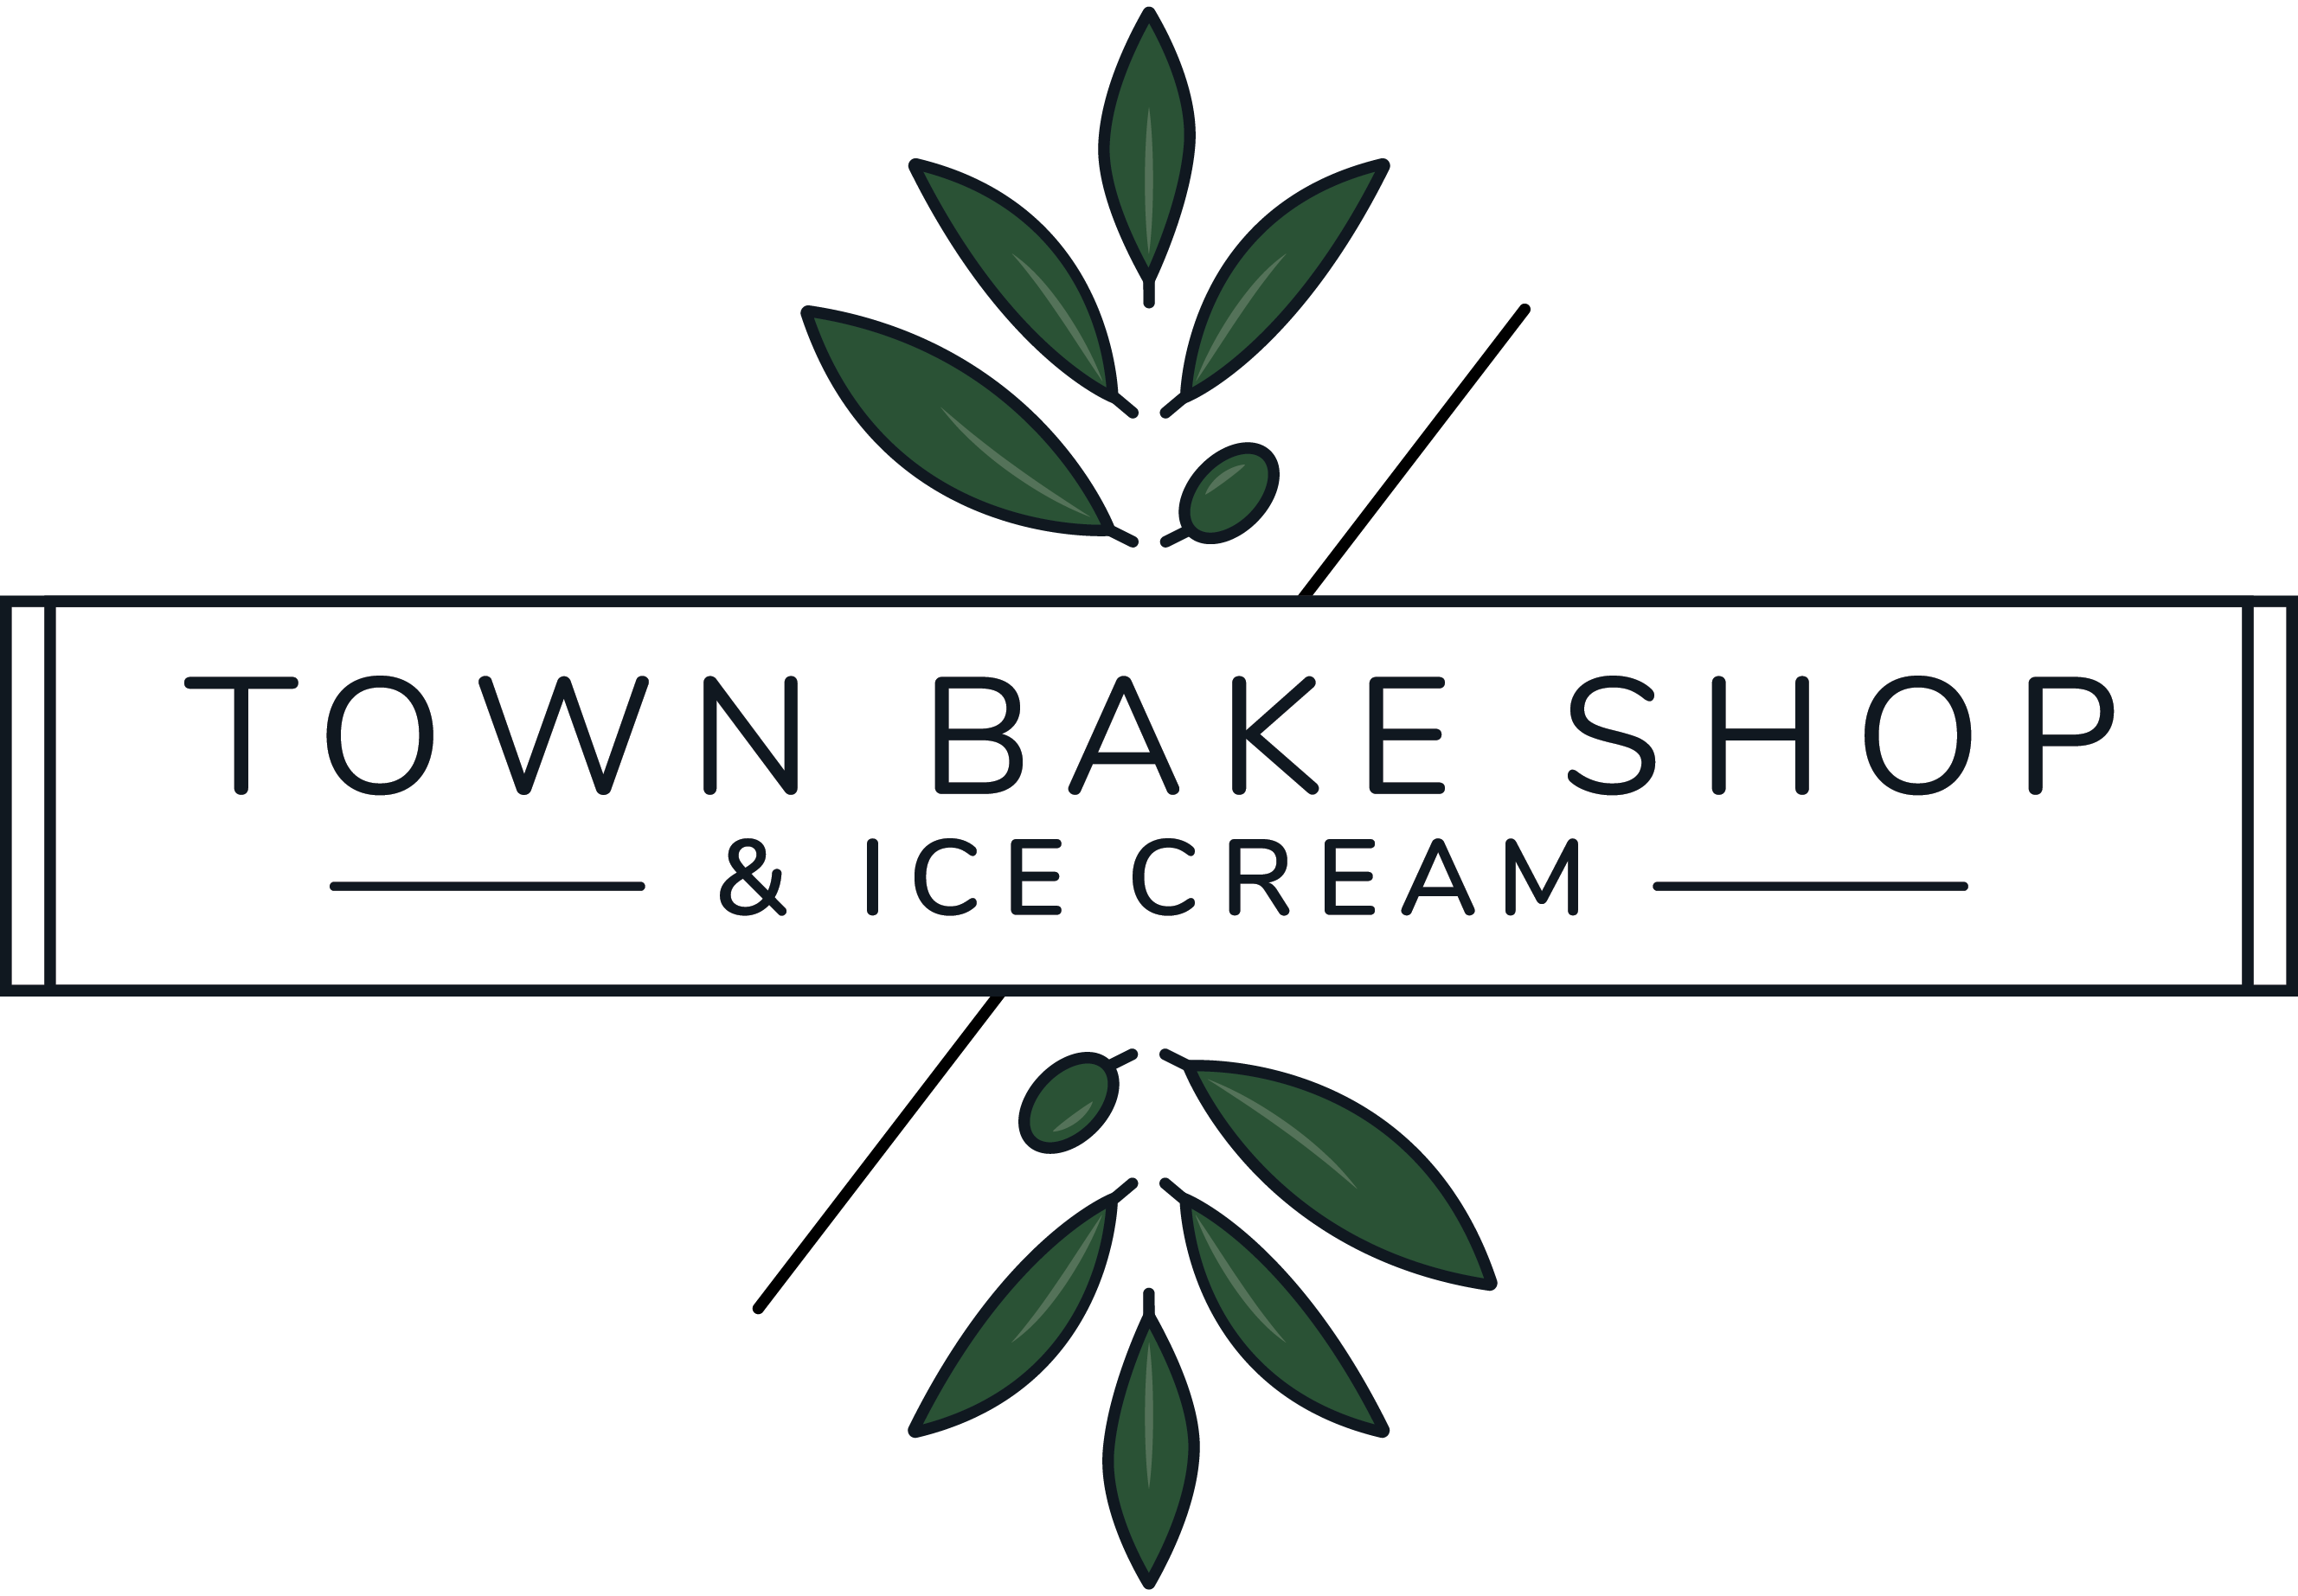 Town Bake Shop & Ice Cream